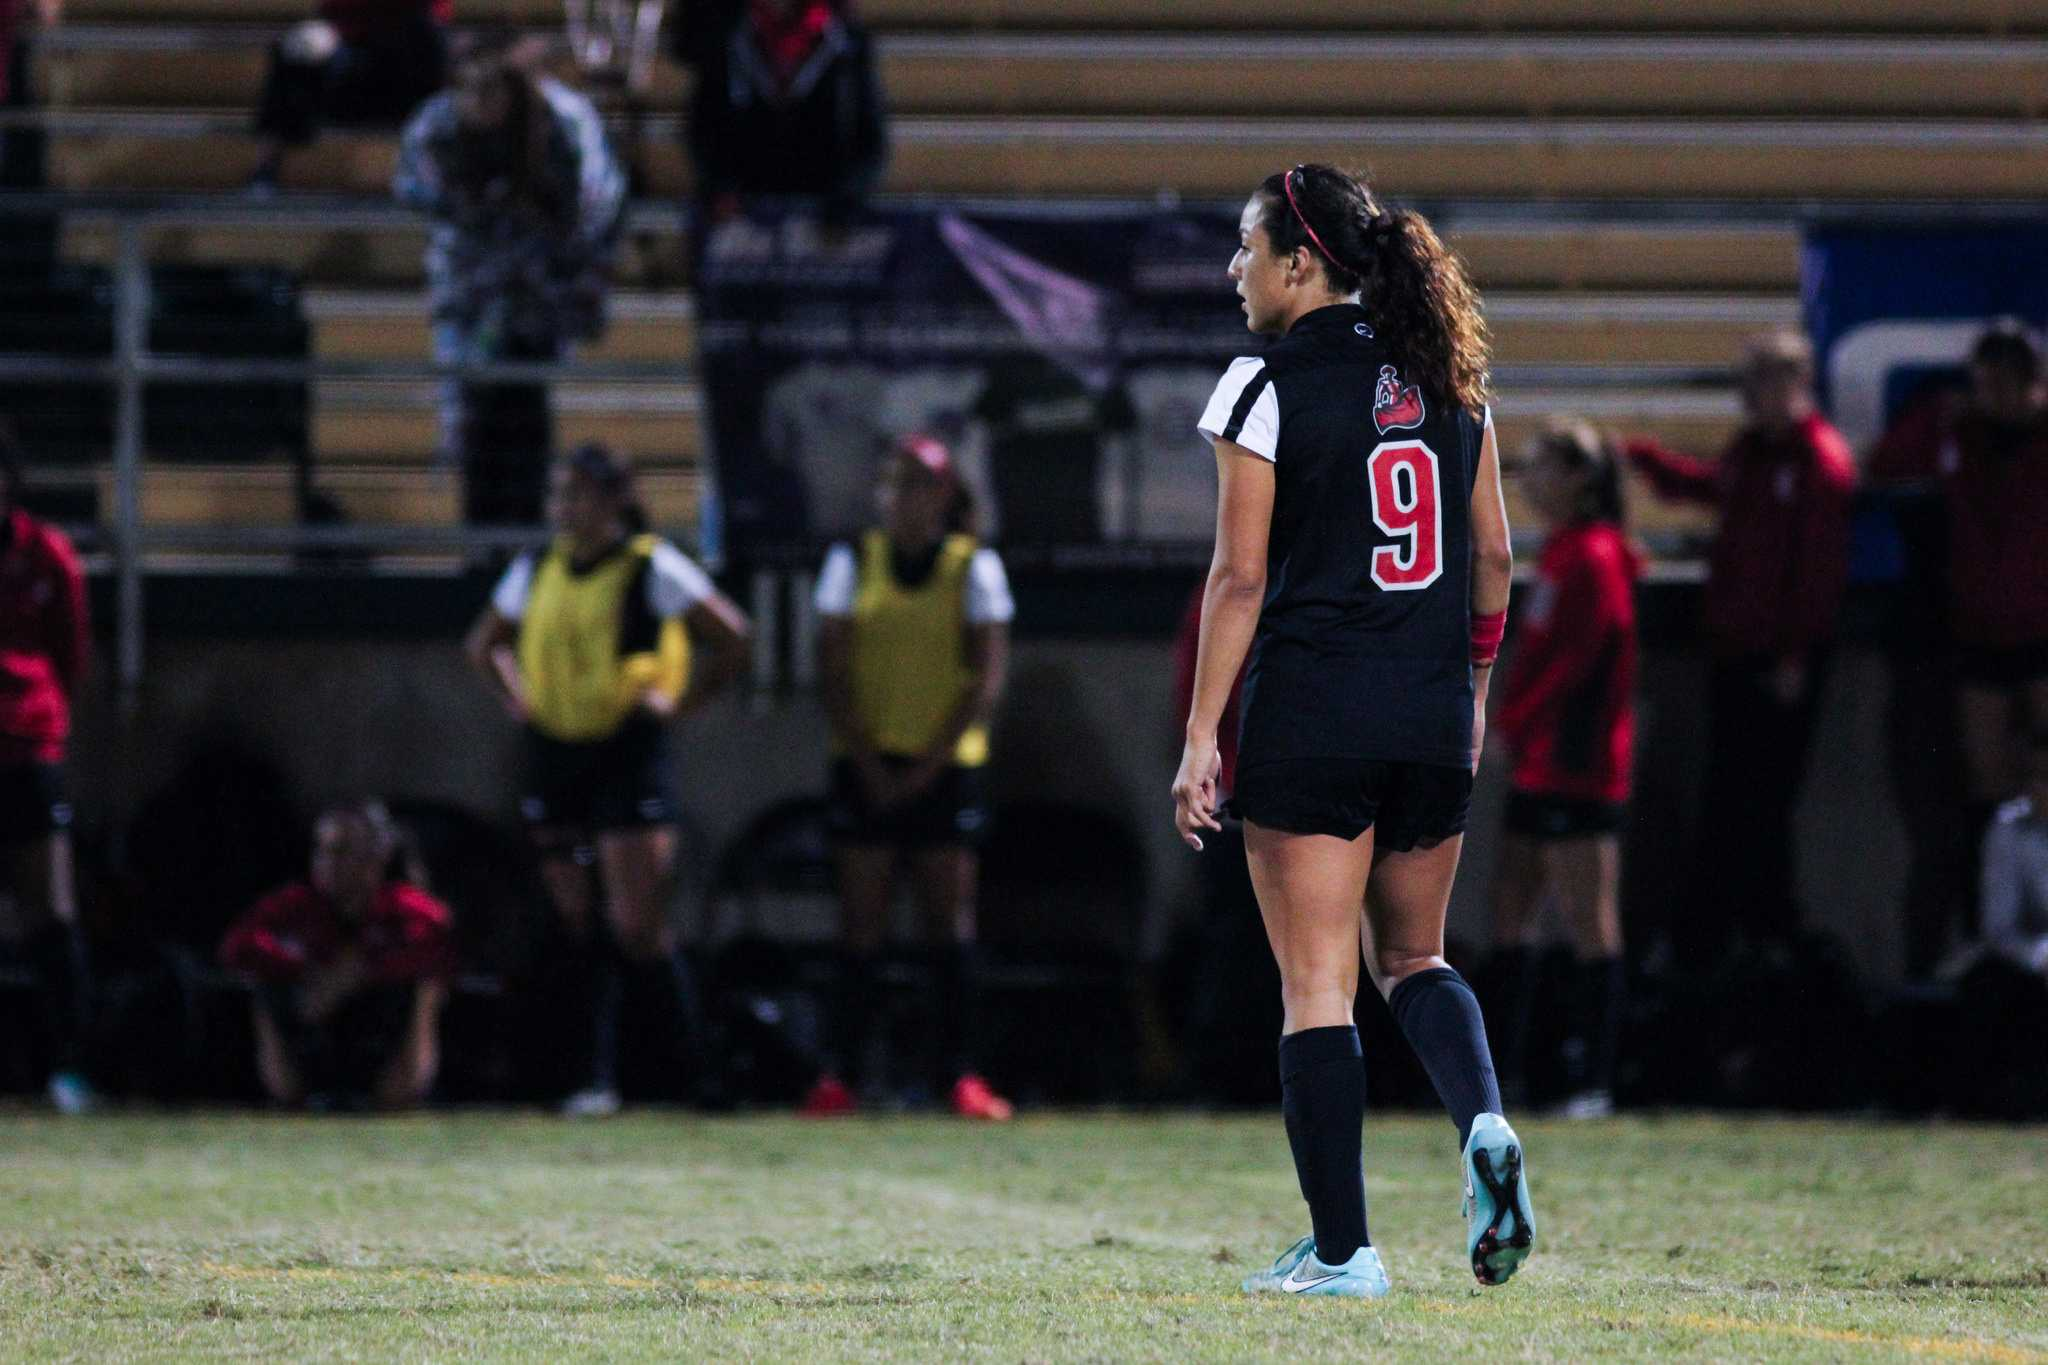 Cynthia Sanchez #9 is only four goals away from becoming that Matadors all-time leading scorer. Photo credit: File Photo/The Sundial